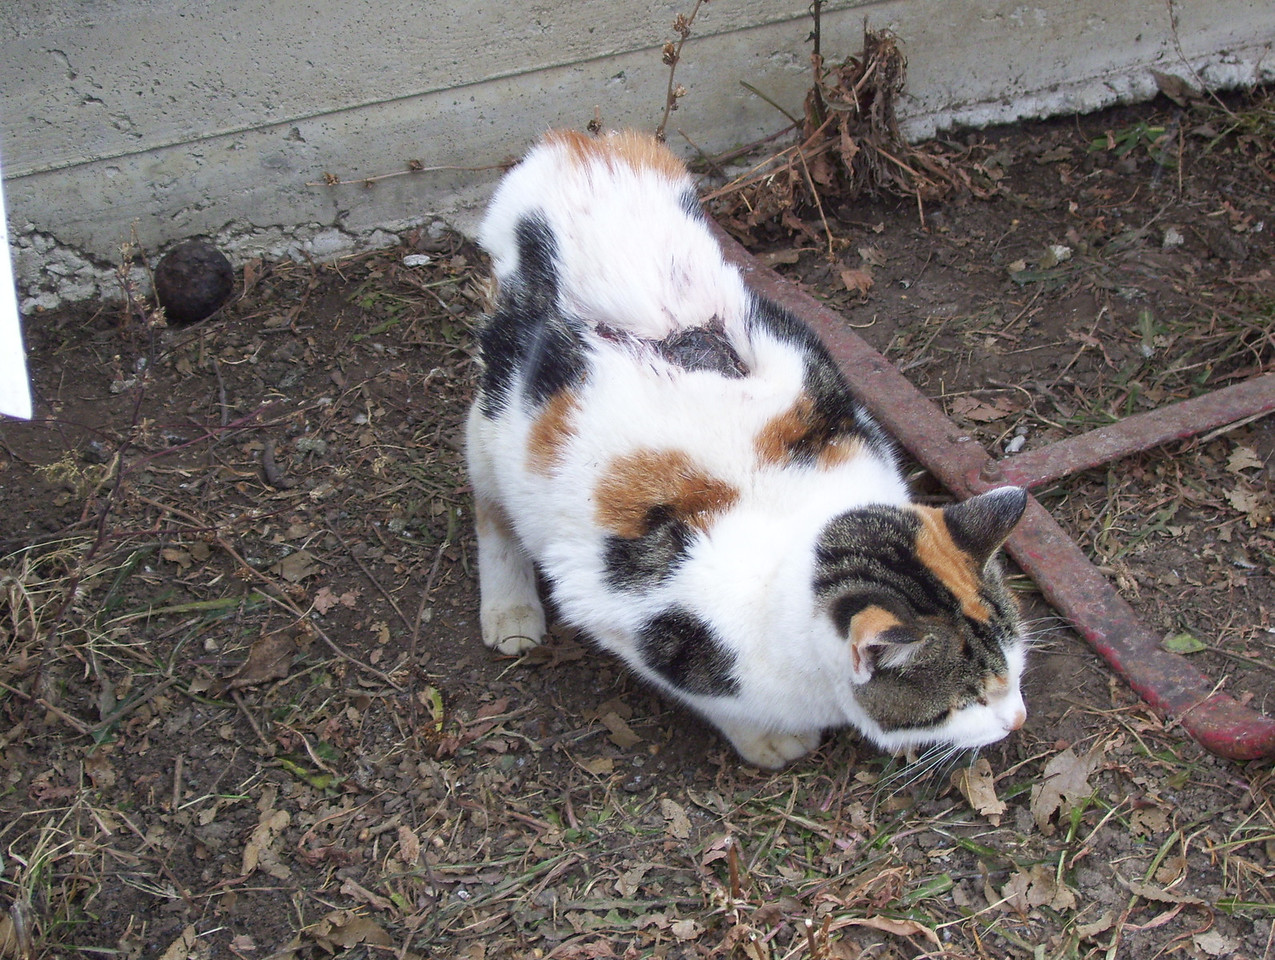 7 The Slow Motion Porch Pretty Kitty<br /> We caught her out this morning, she was setting there when I saw her but Kathy saw her walk very slow. She gets around but very slow and deliberate with how she walks. The back legs don't seem to let her bend down in a normal crouching position